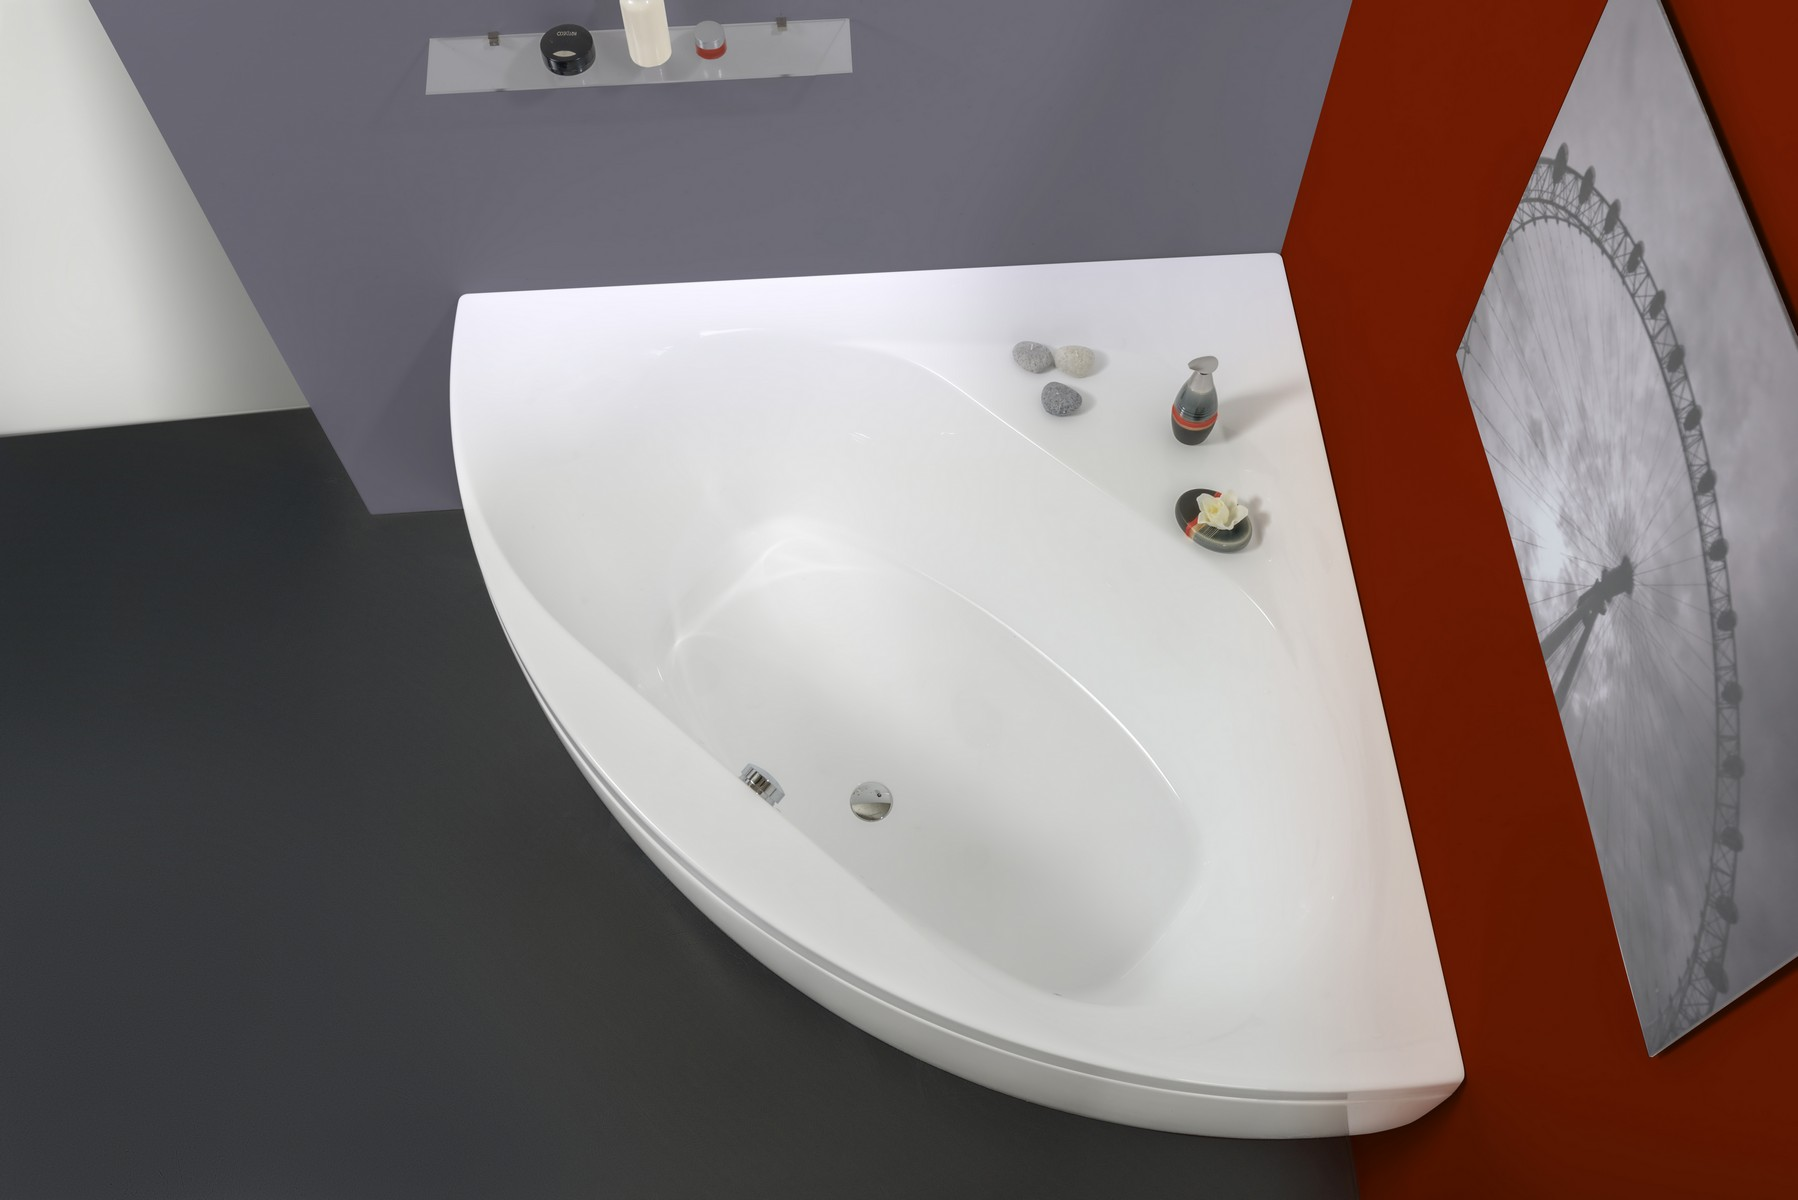 Aquatica S Olivia Corner Tub Is A Timeless Model Which Has Been Designed To Suit Small Contemporary Bathrooms Crafted Using Premium Acrylic Sheets From